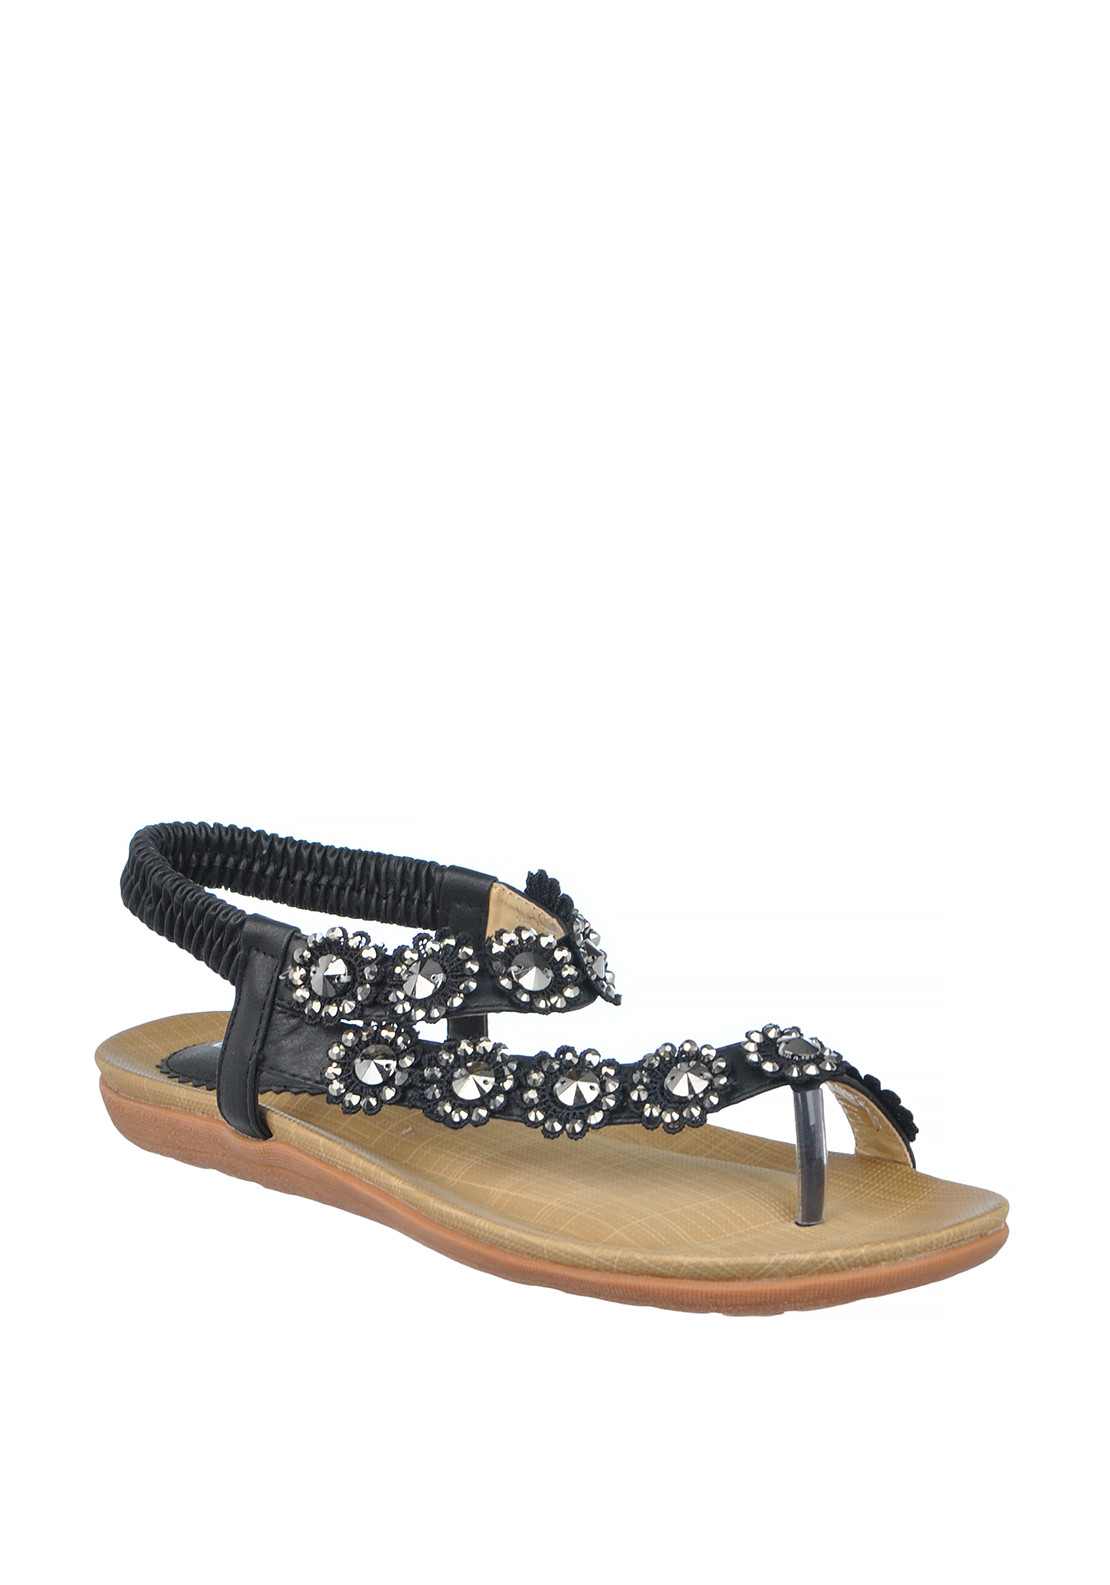 Lunar Charlotte Flower Embellished Toe Post Sandals, Black